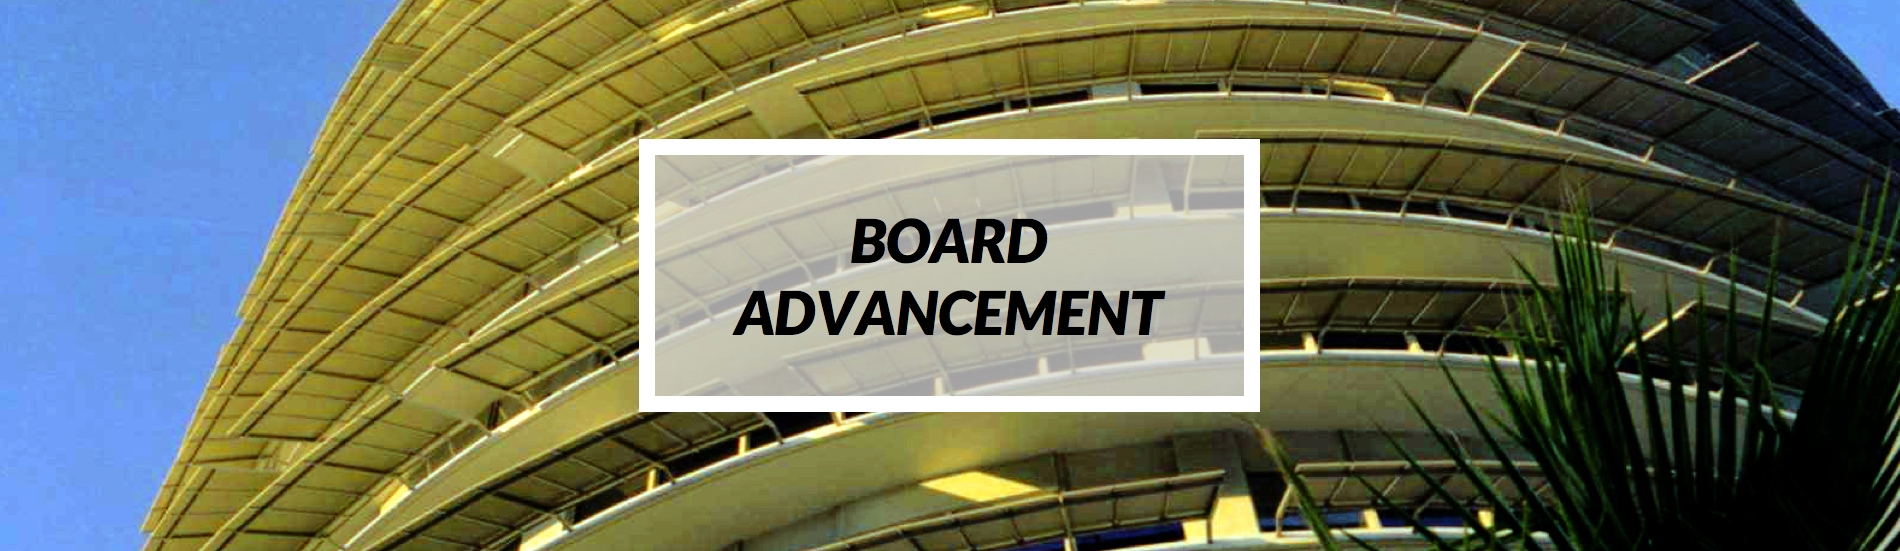 formatted_boardadvancement